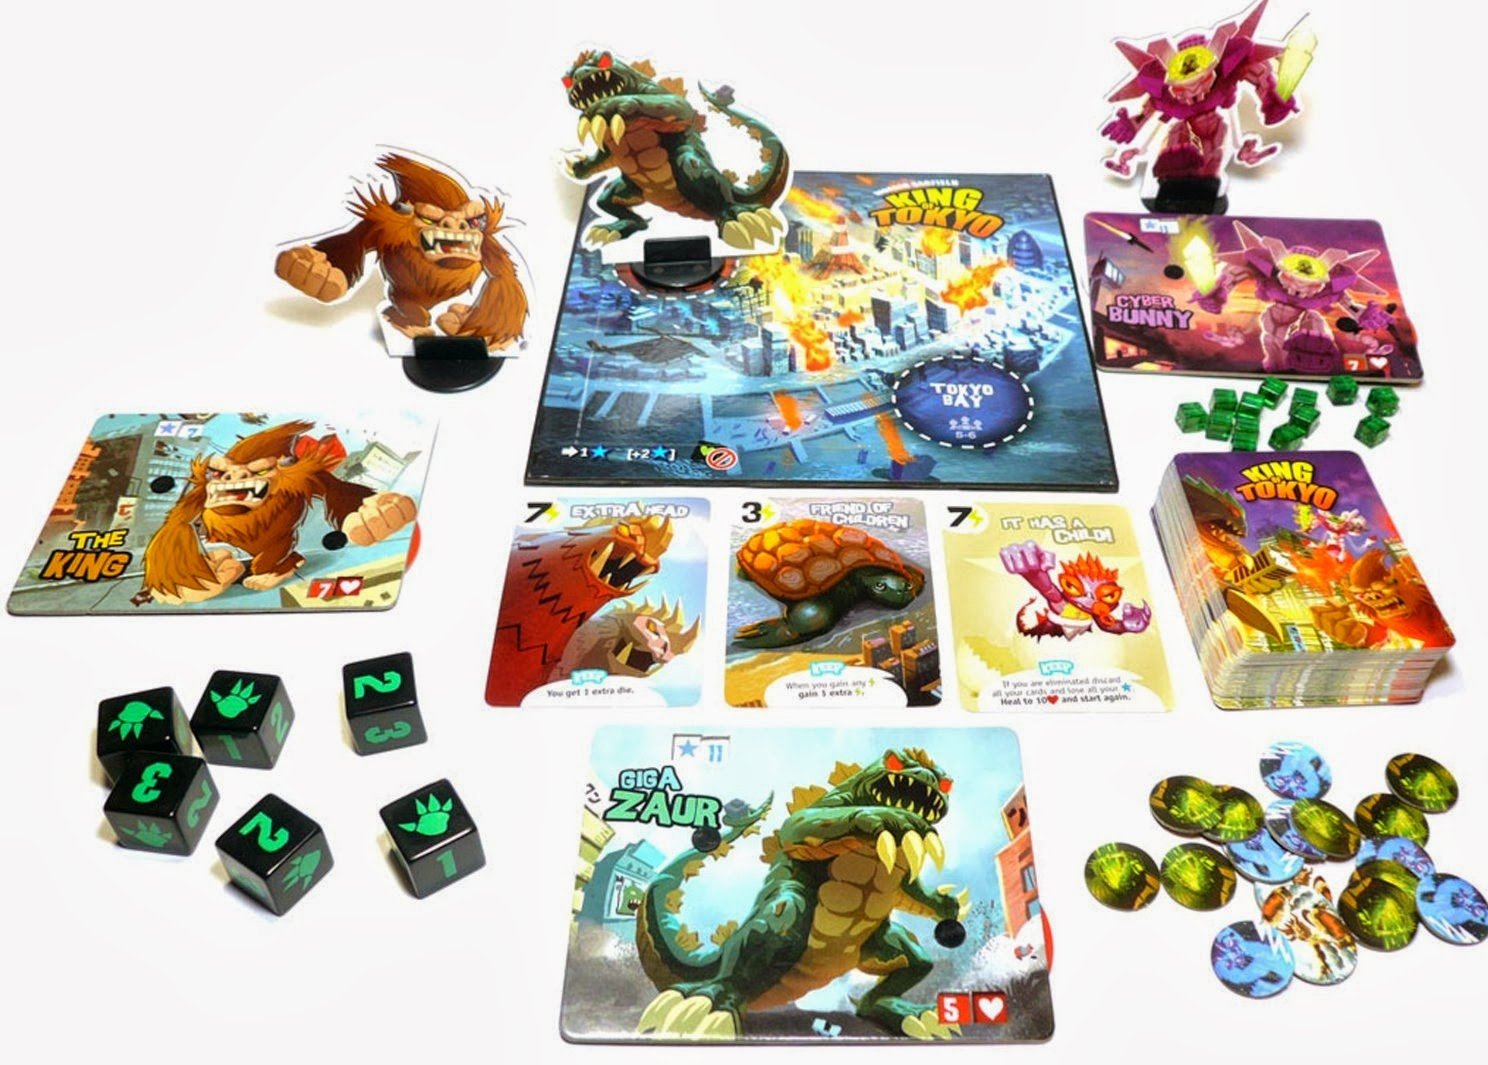 Godzilla fights King Kong and Cthulhu board game